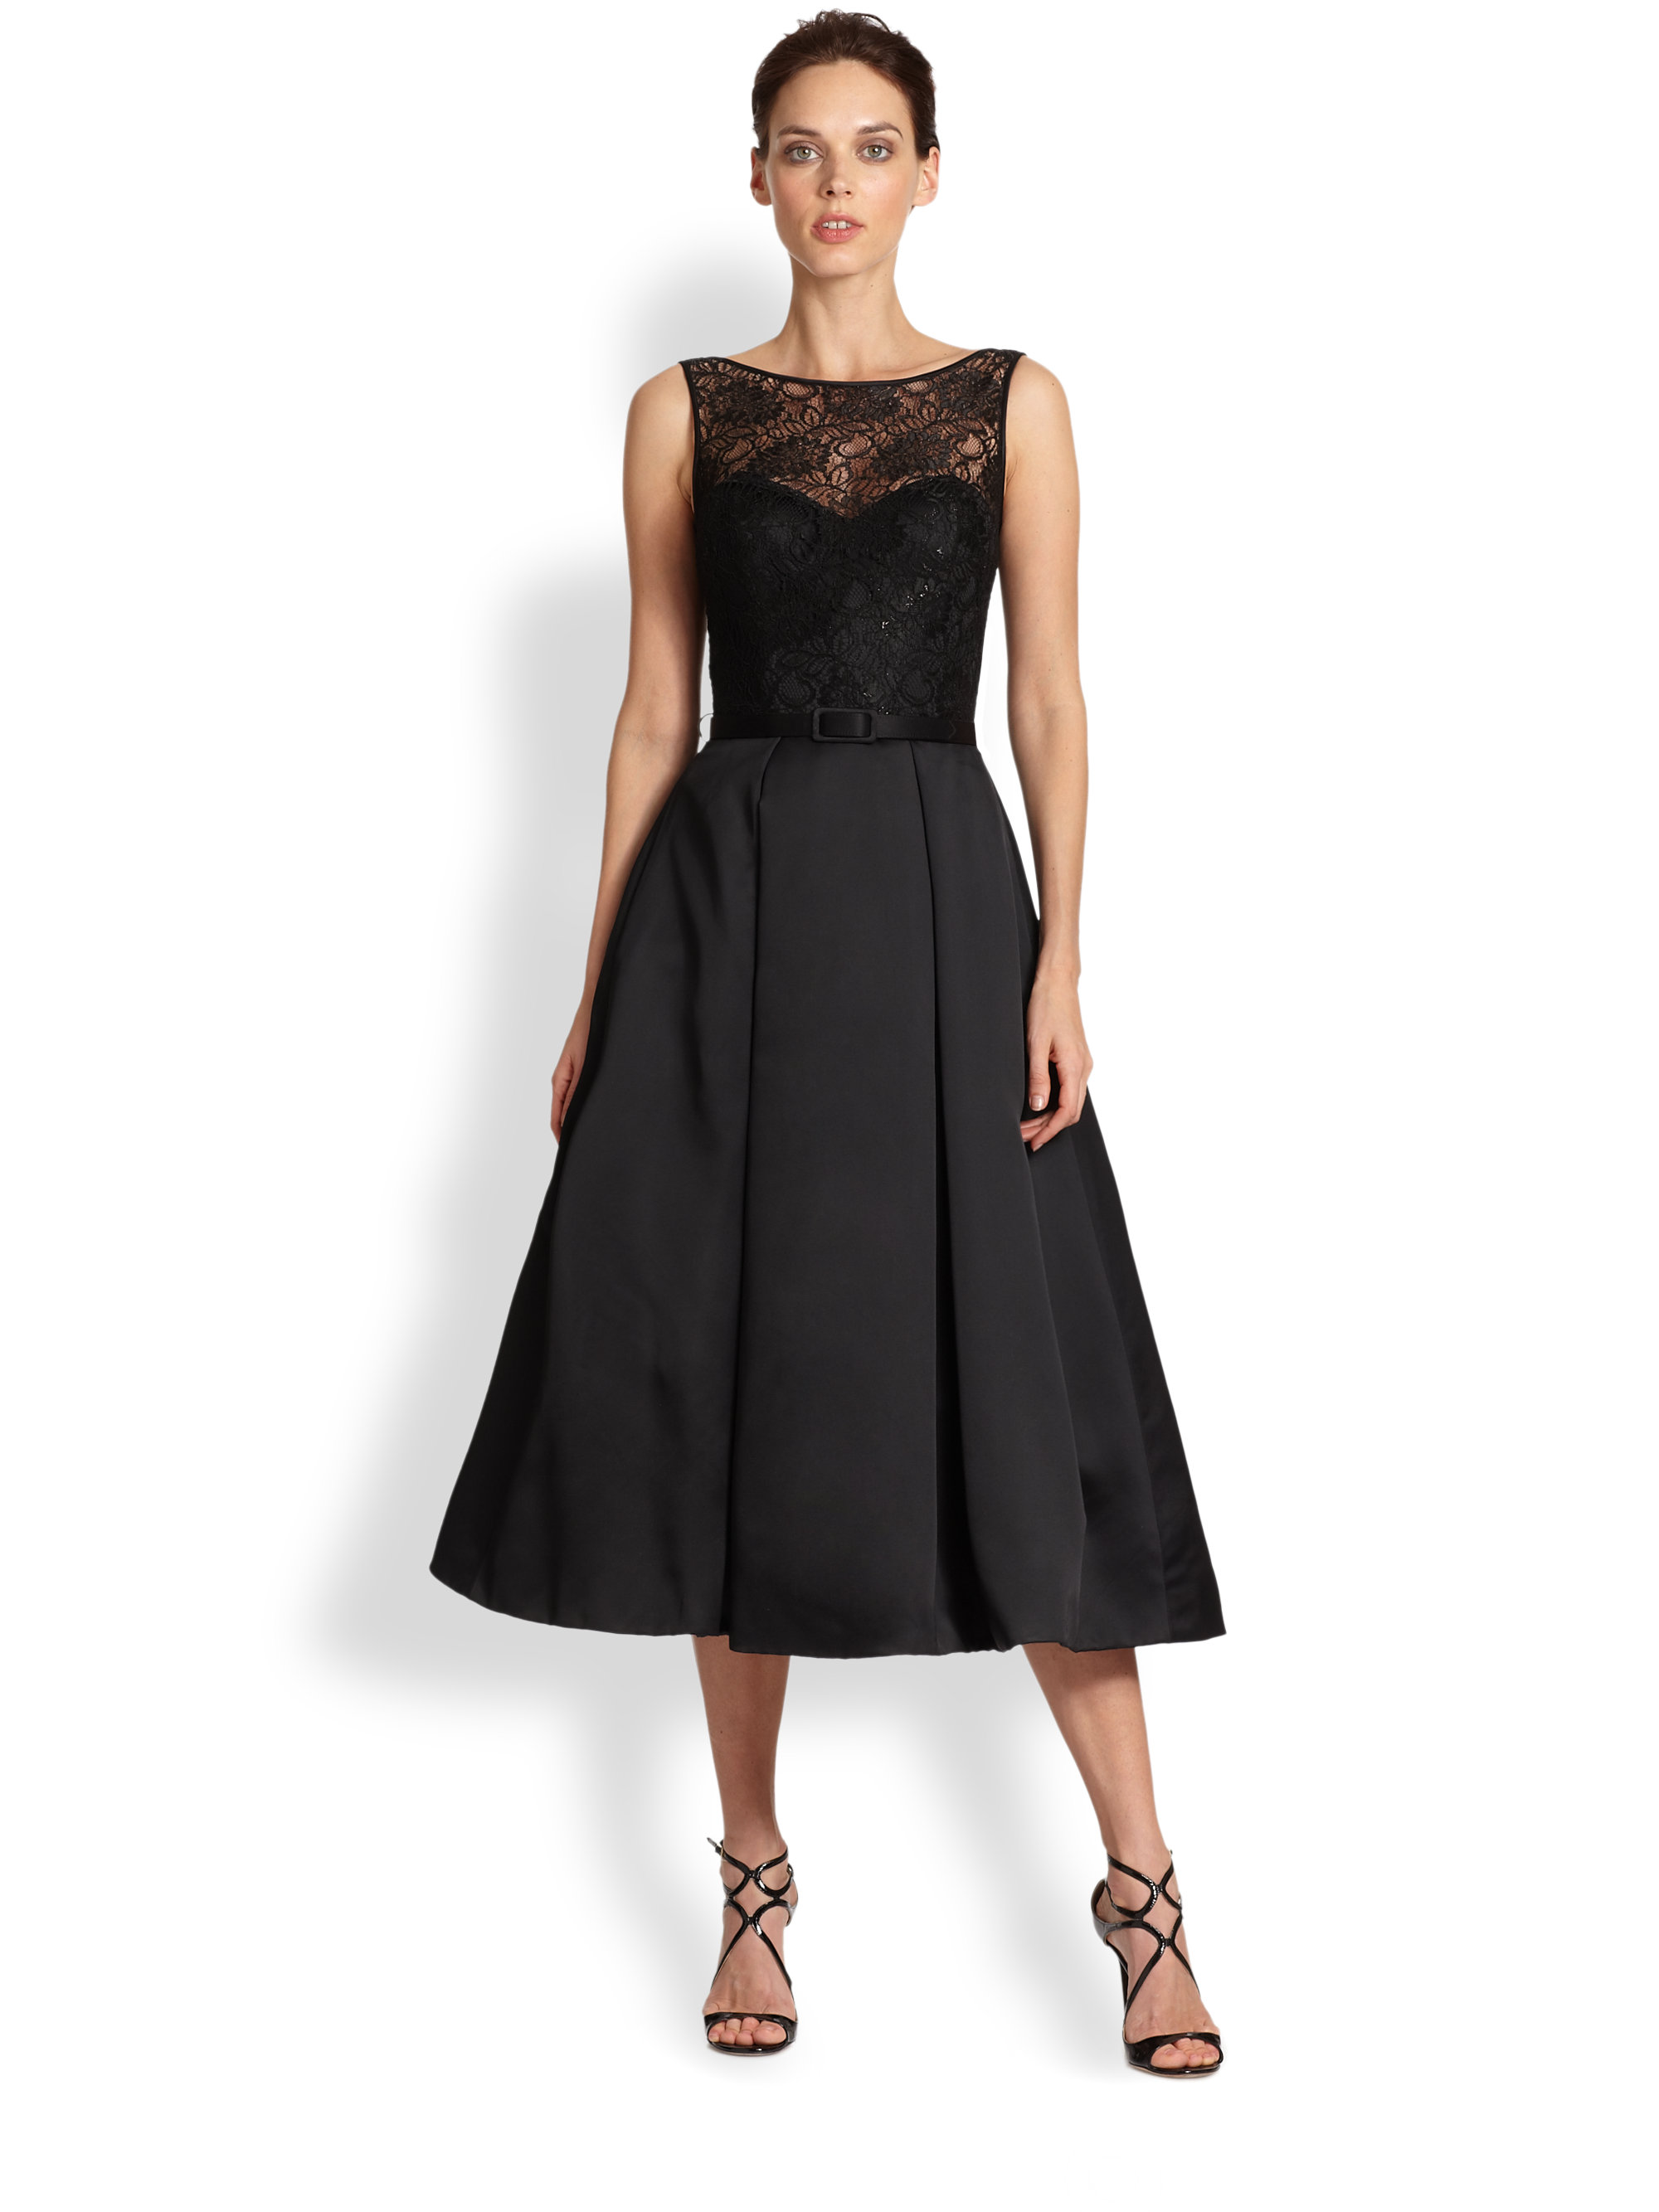 Images of Black Lace Top Dress - Giftlist